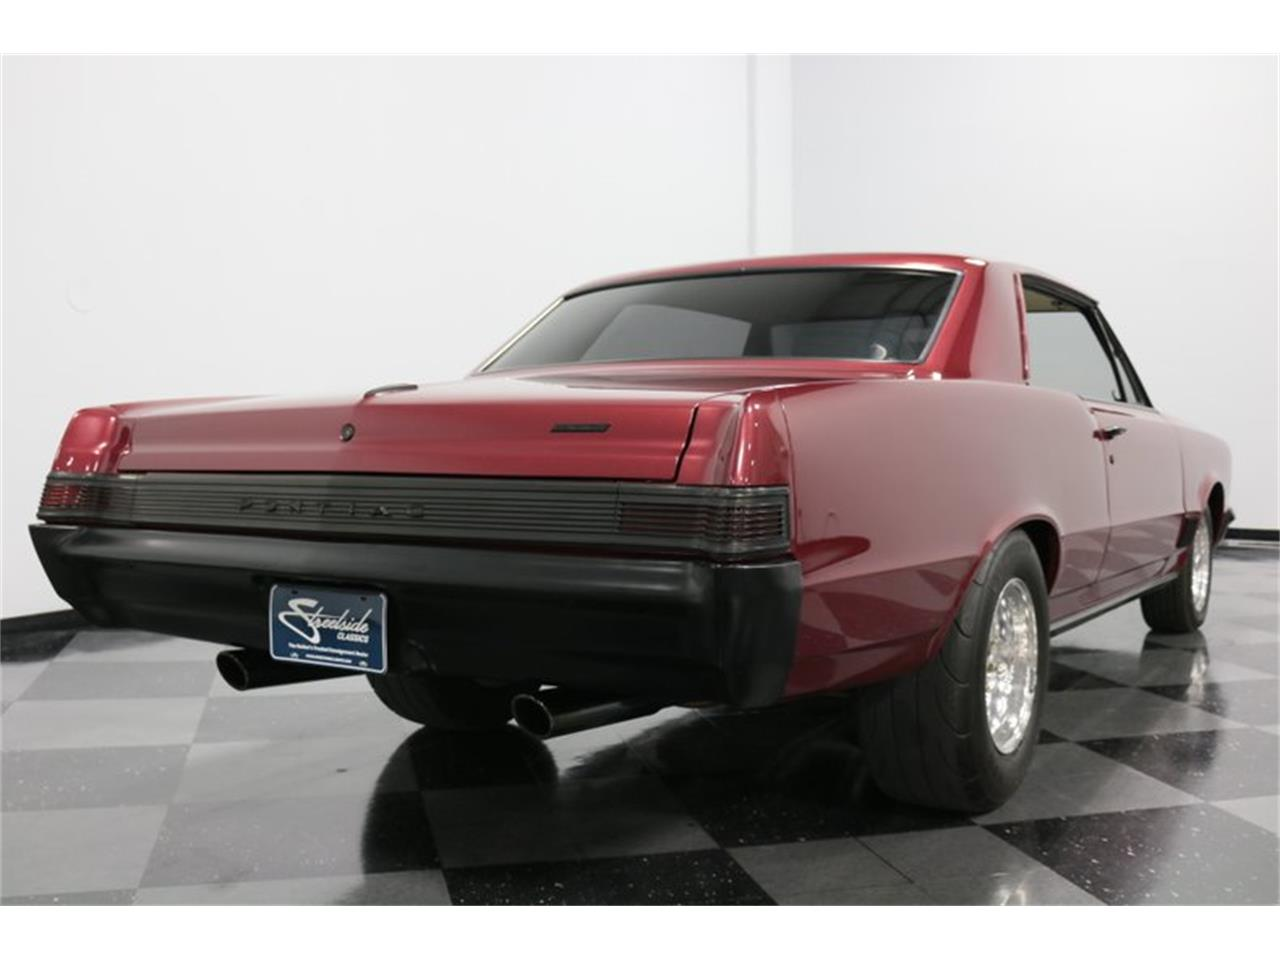 Large Picture of Classic 1965 Pontiac LeMans located in Texas - $37,995.00 Offered by Streetside Classics - Dallas / Fort Worth - Q507